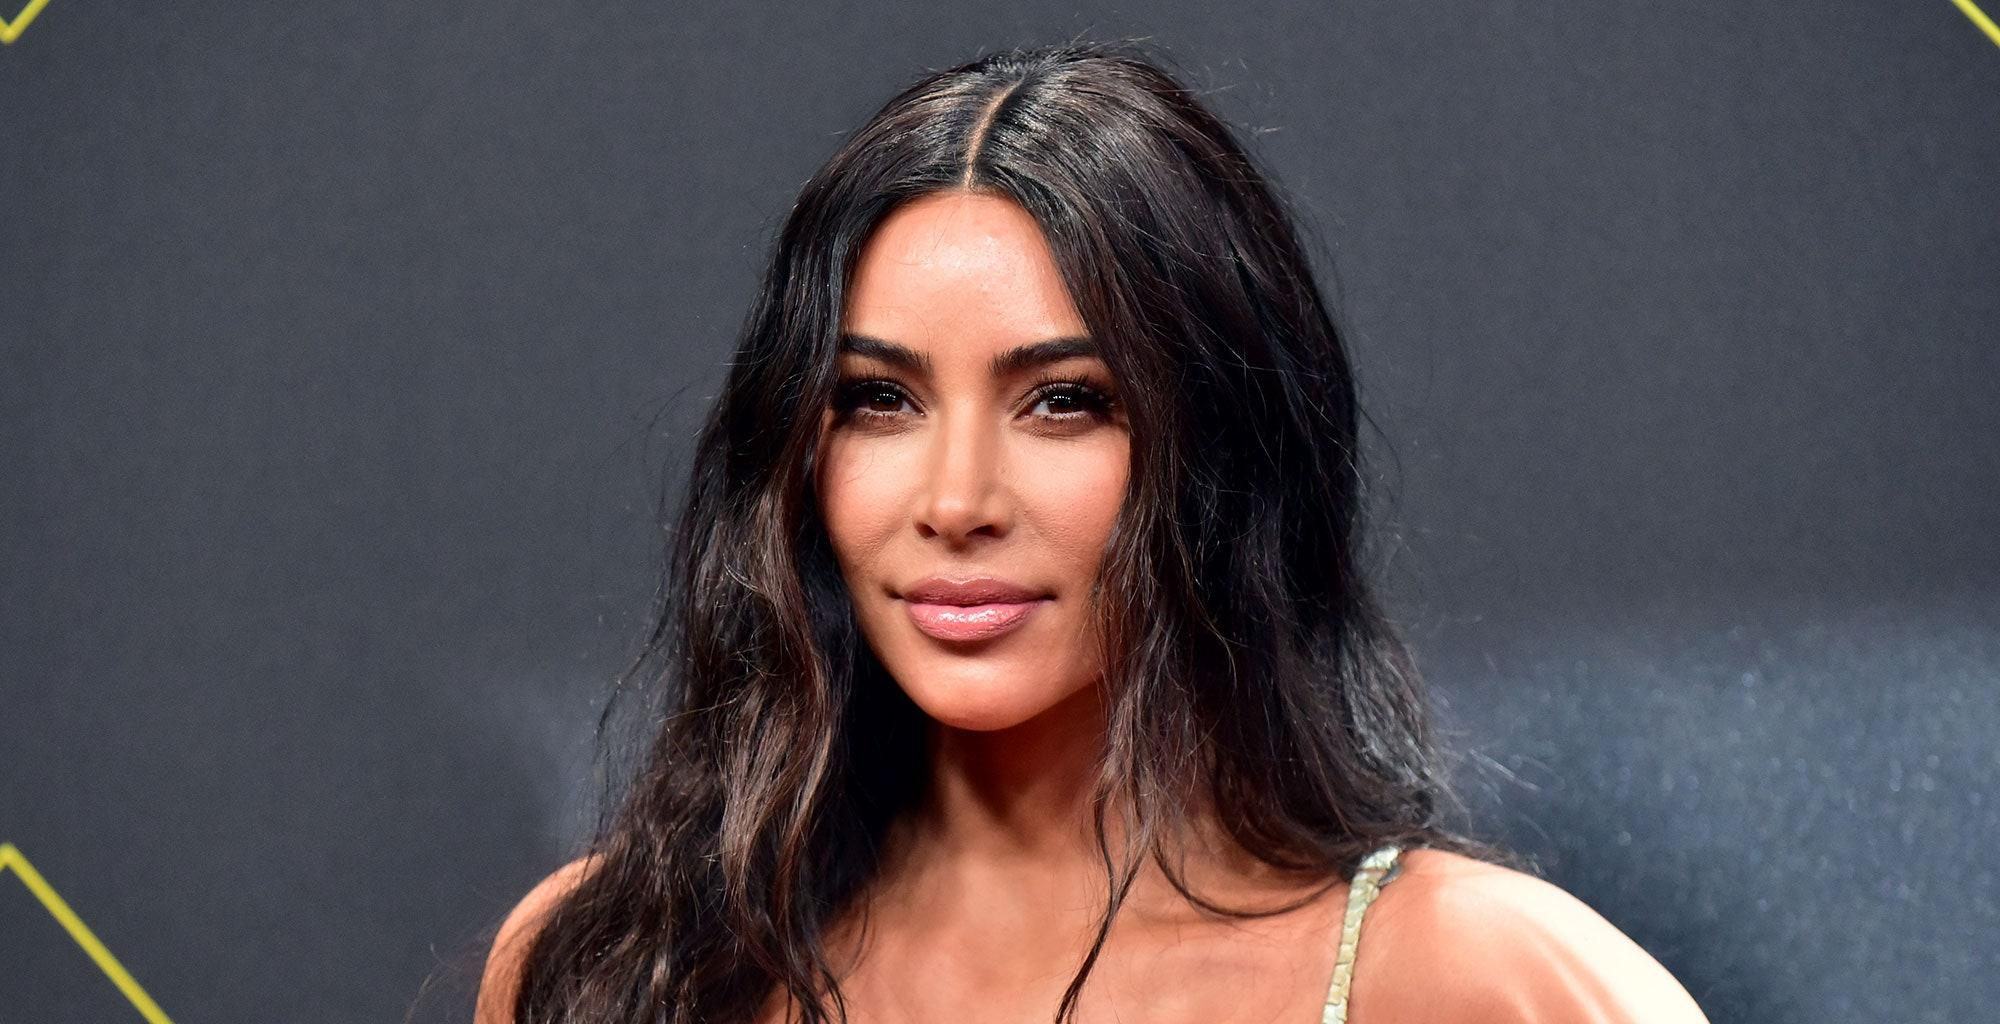 Kim Kardashian's Latest Photo Sparks Rumors About Who She Voted With